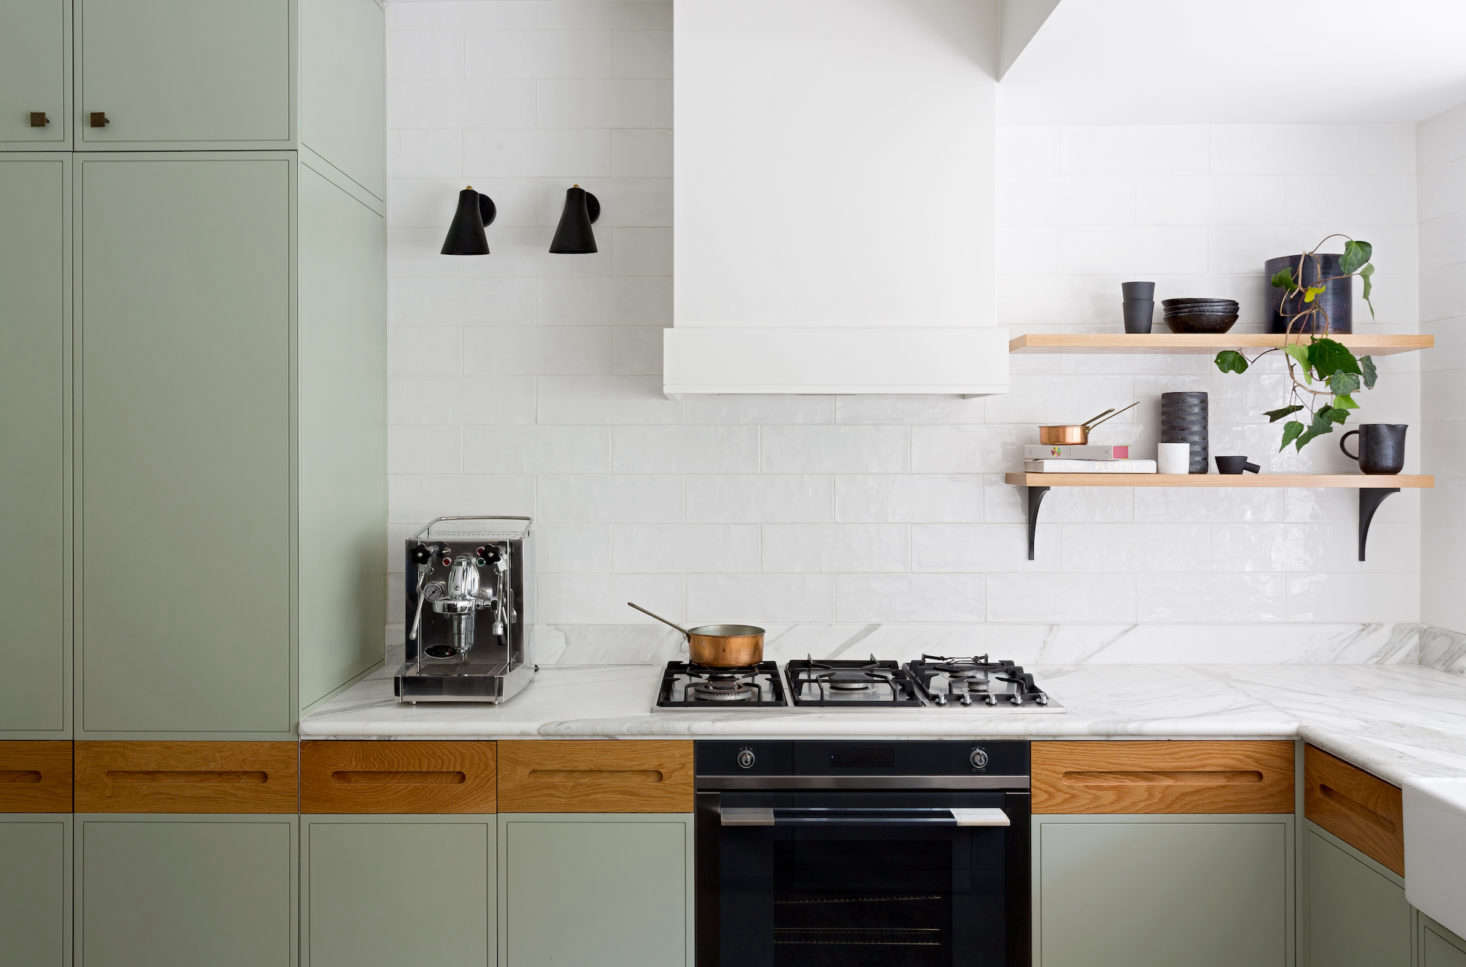 Marble counters in a kitchen designed by Sydney-based interior designers Juliette Arent and Sarah-Jane Pyke. Photograph from Kitchen of the Week: A Before/After Remodel in Sydney, Australia.